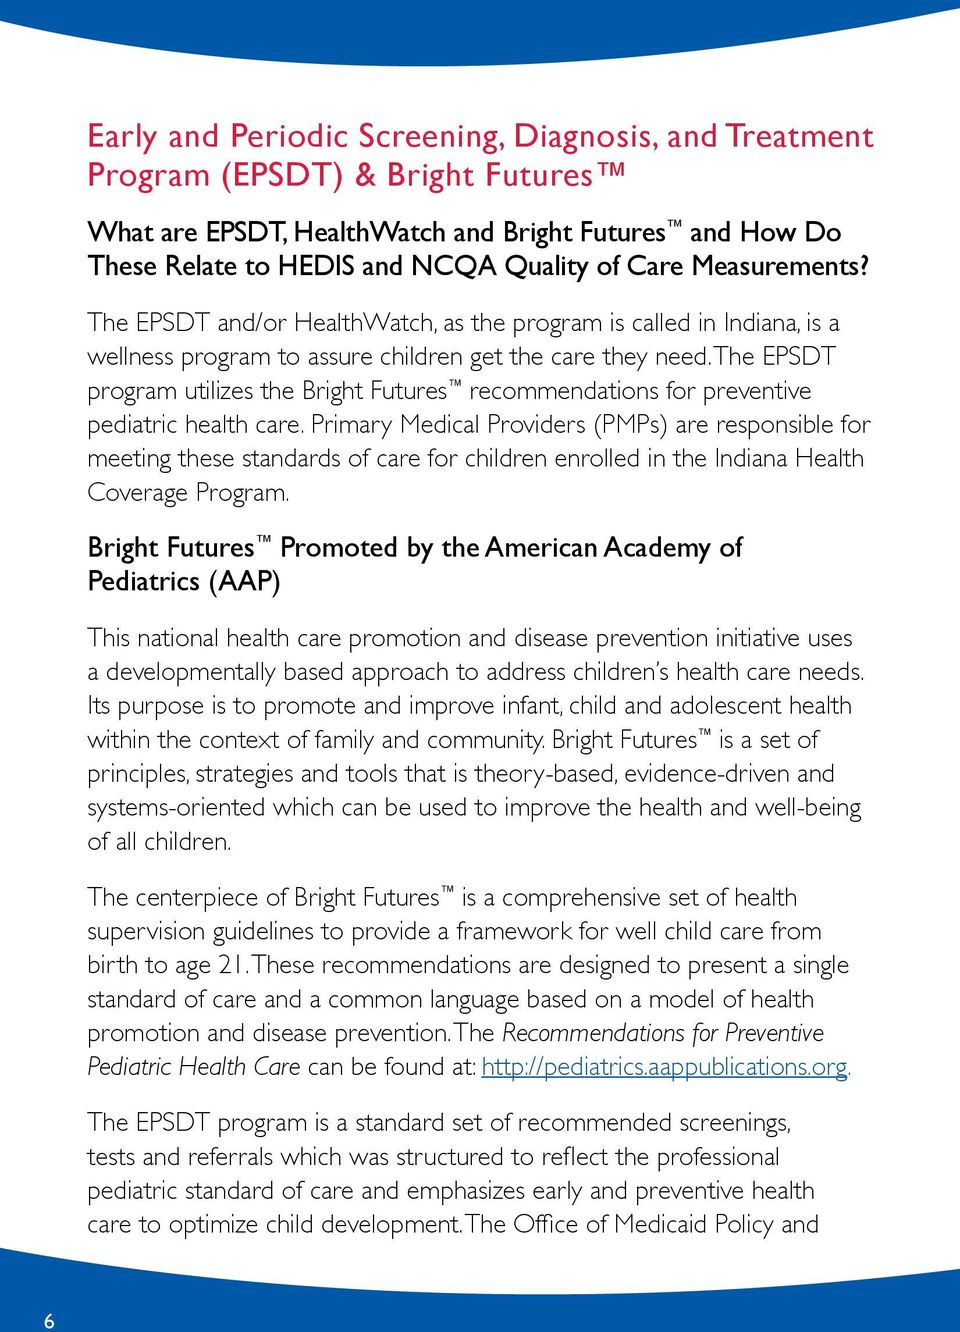 The EPSDT program utilizes the Bright Futures recommendations for preventive pediatric health care.